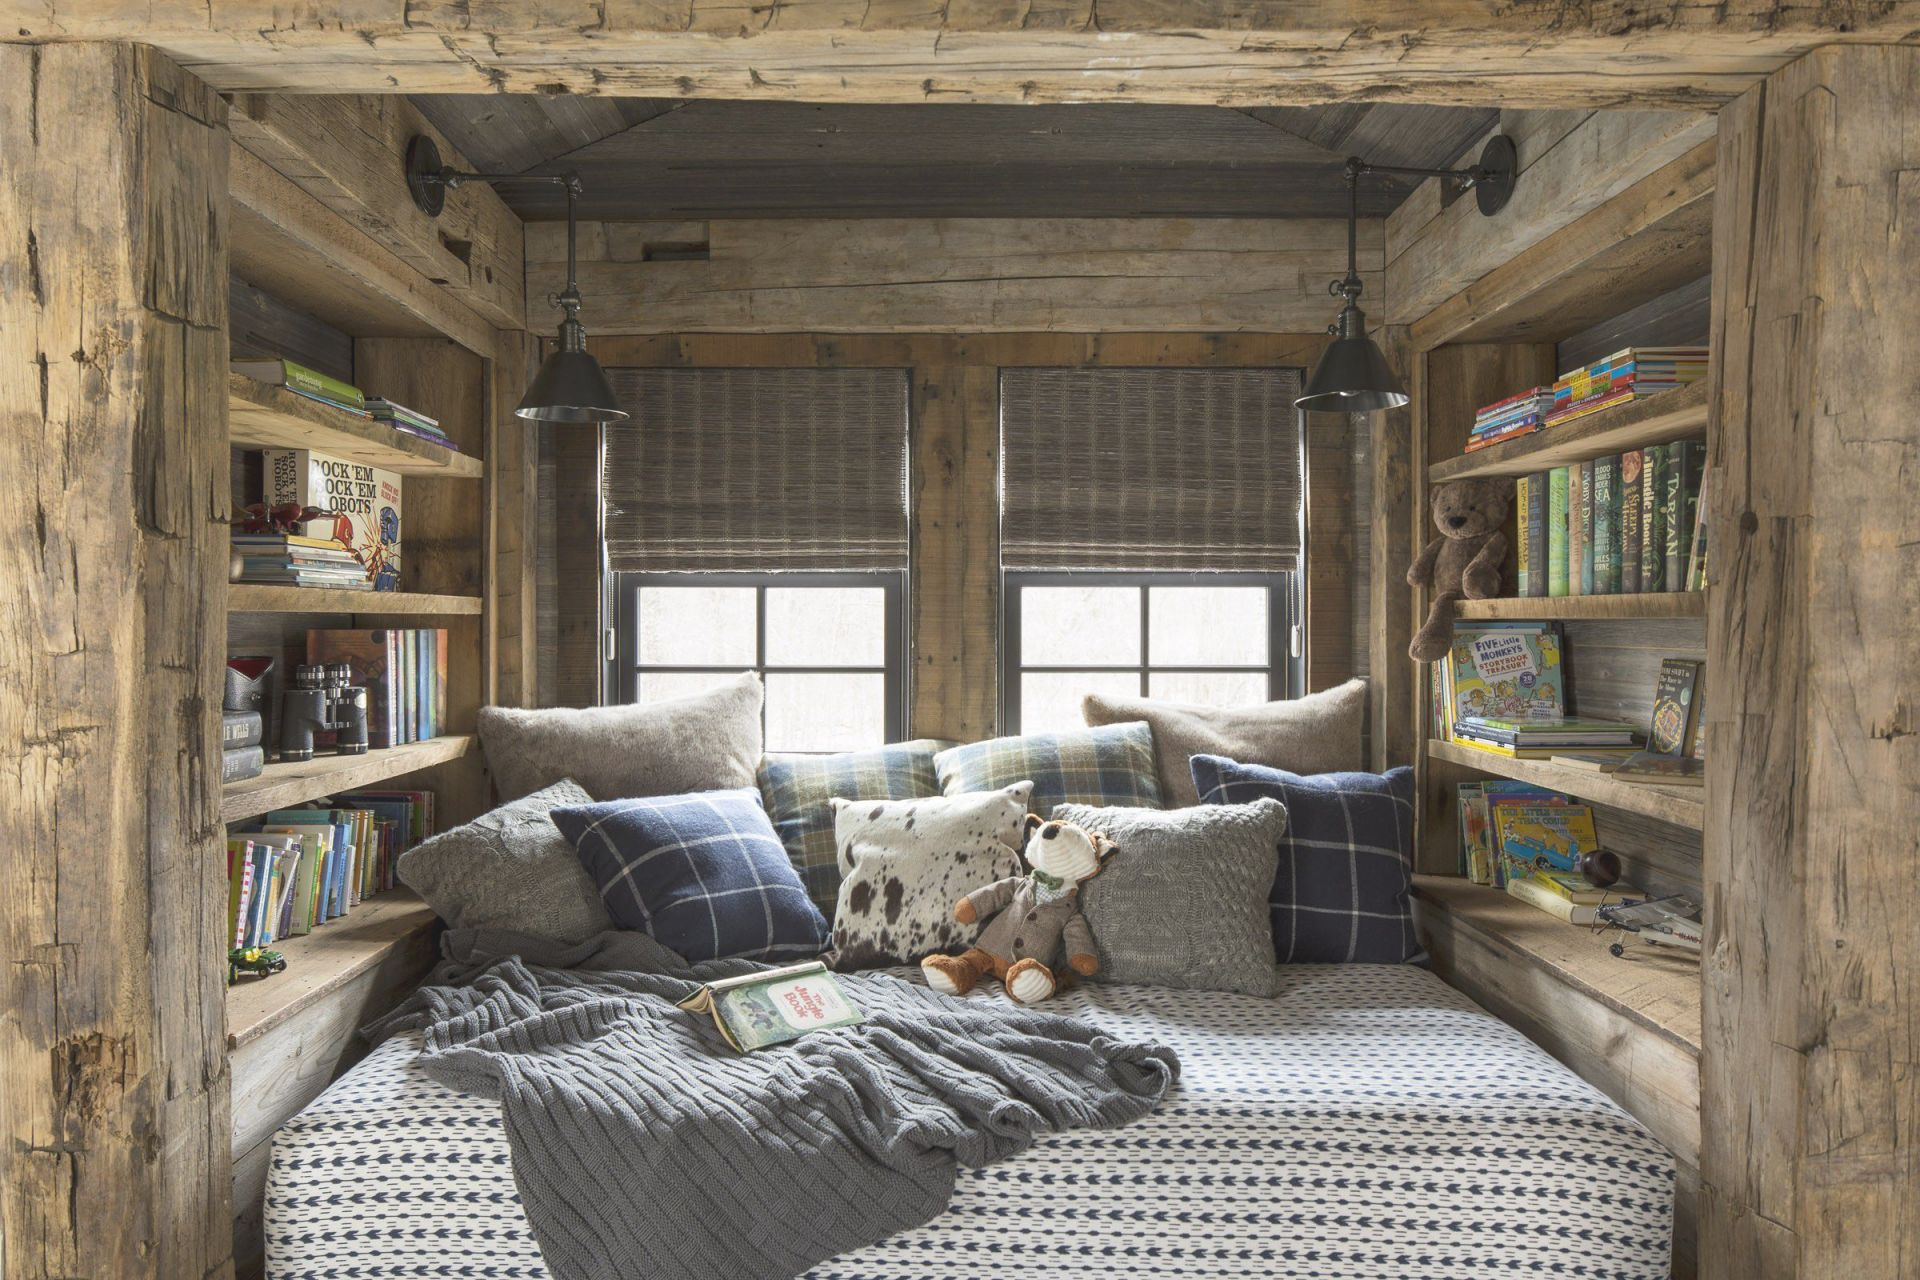 17 Modern Rustic Bedroom Decorating Ideas with Rustic Bedroom Decorating Ideas